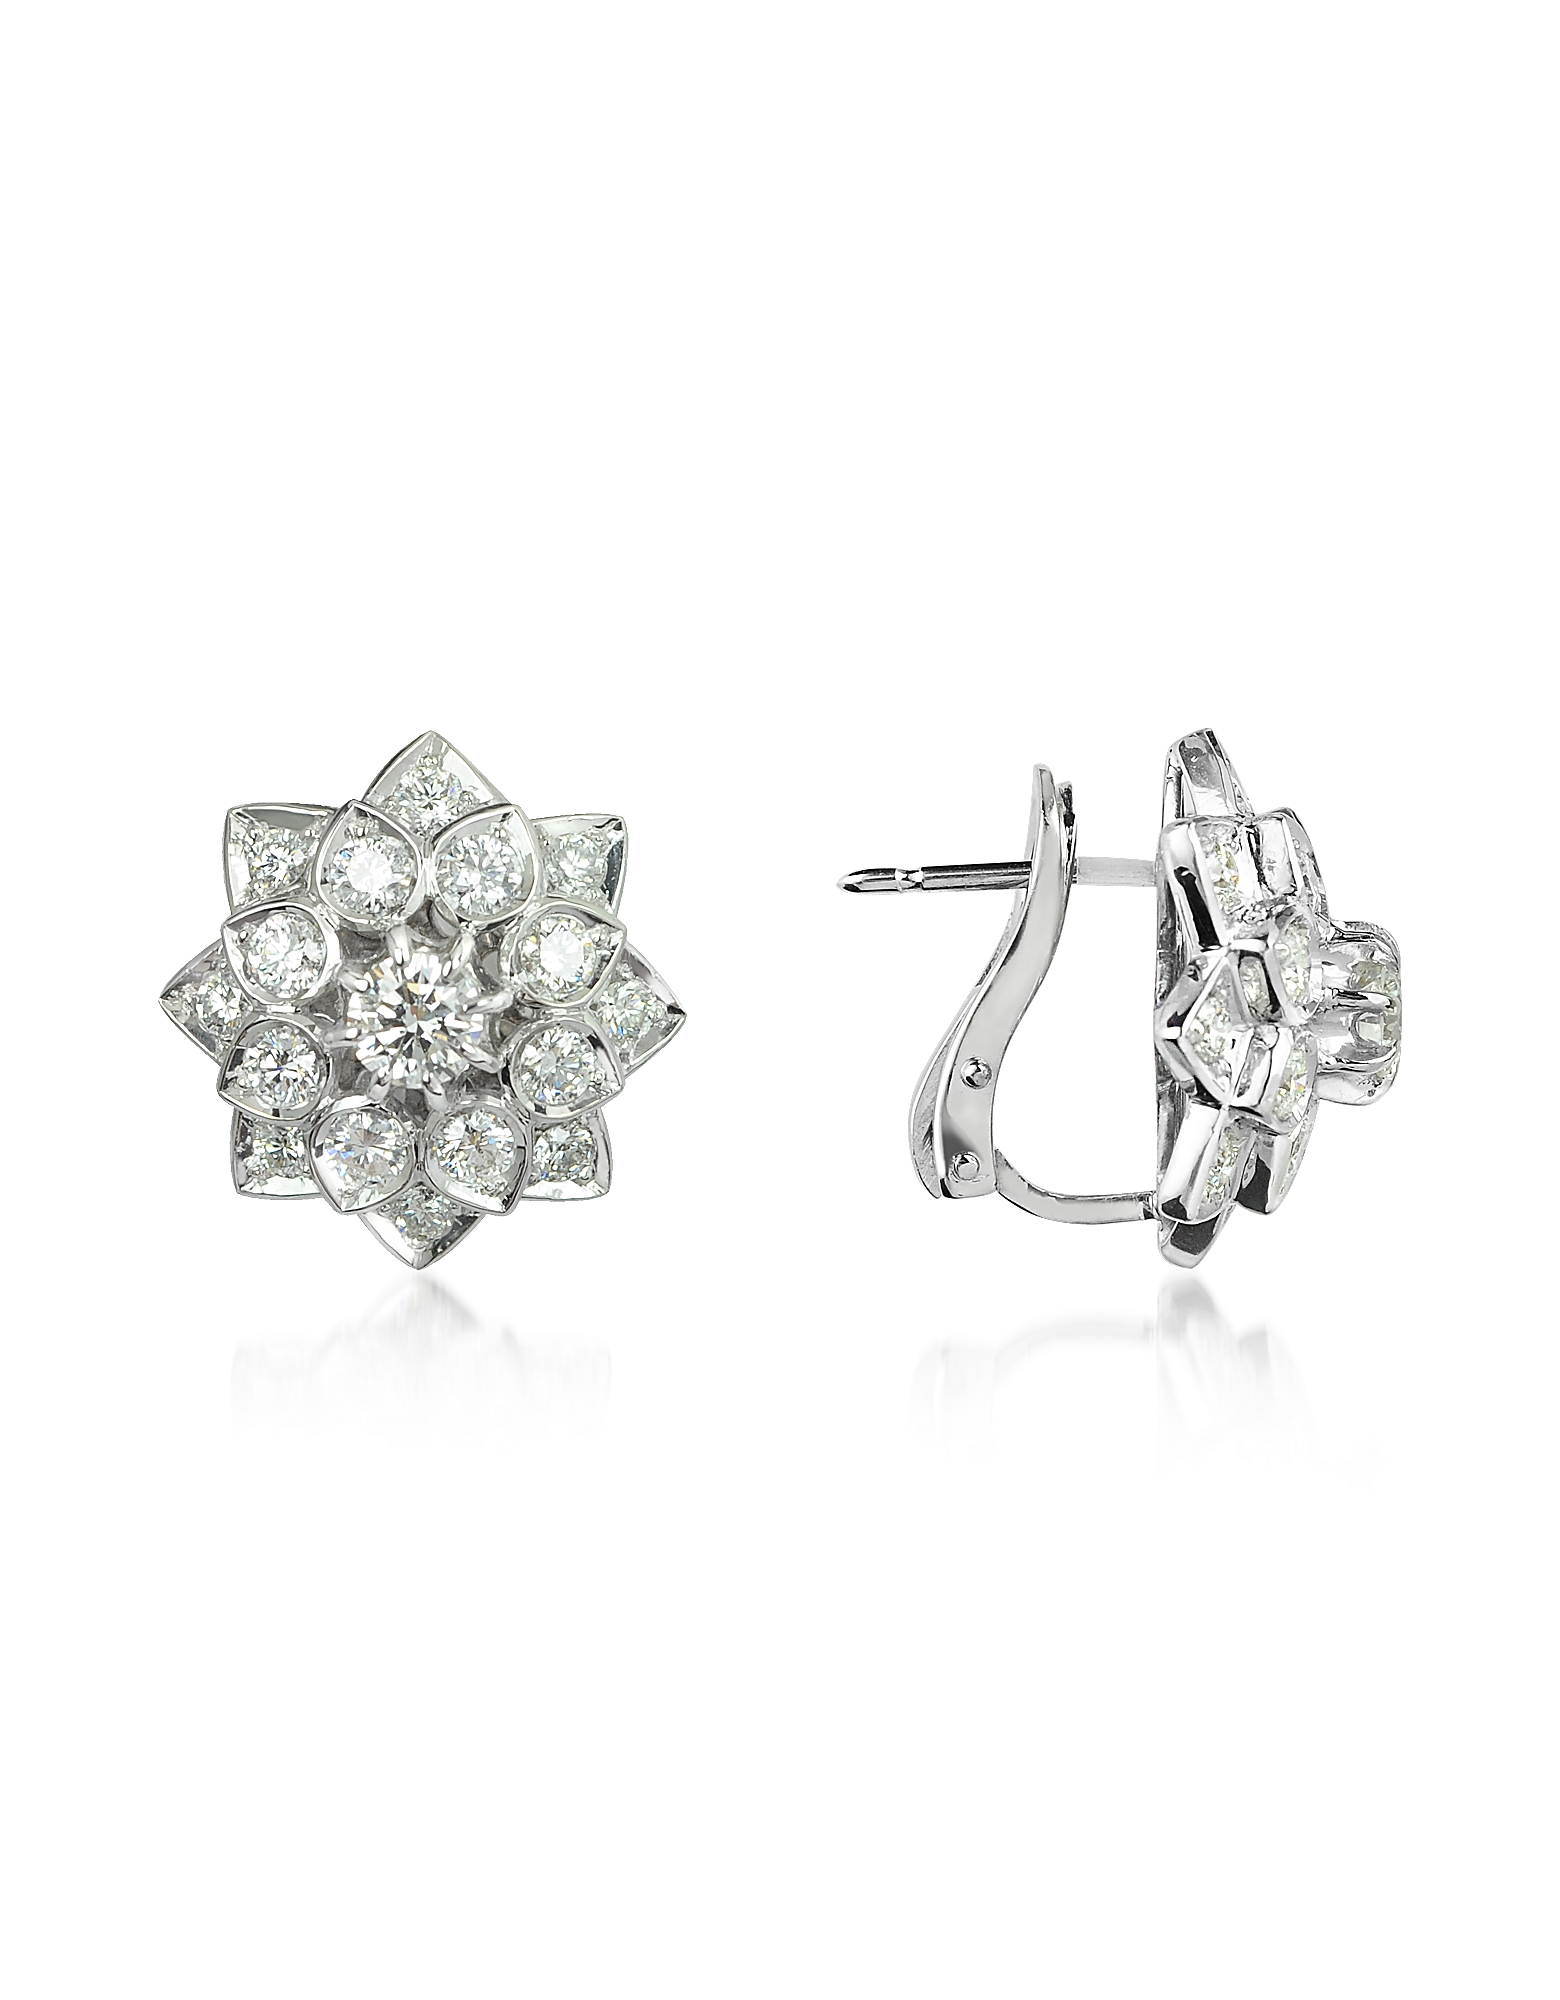 Incanto Royale Earrings, 2.2 ctw Diamond 18K Gold Earrings